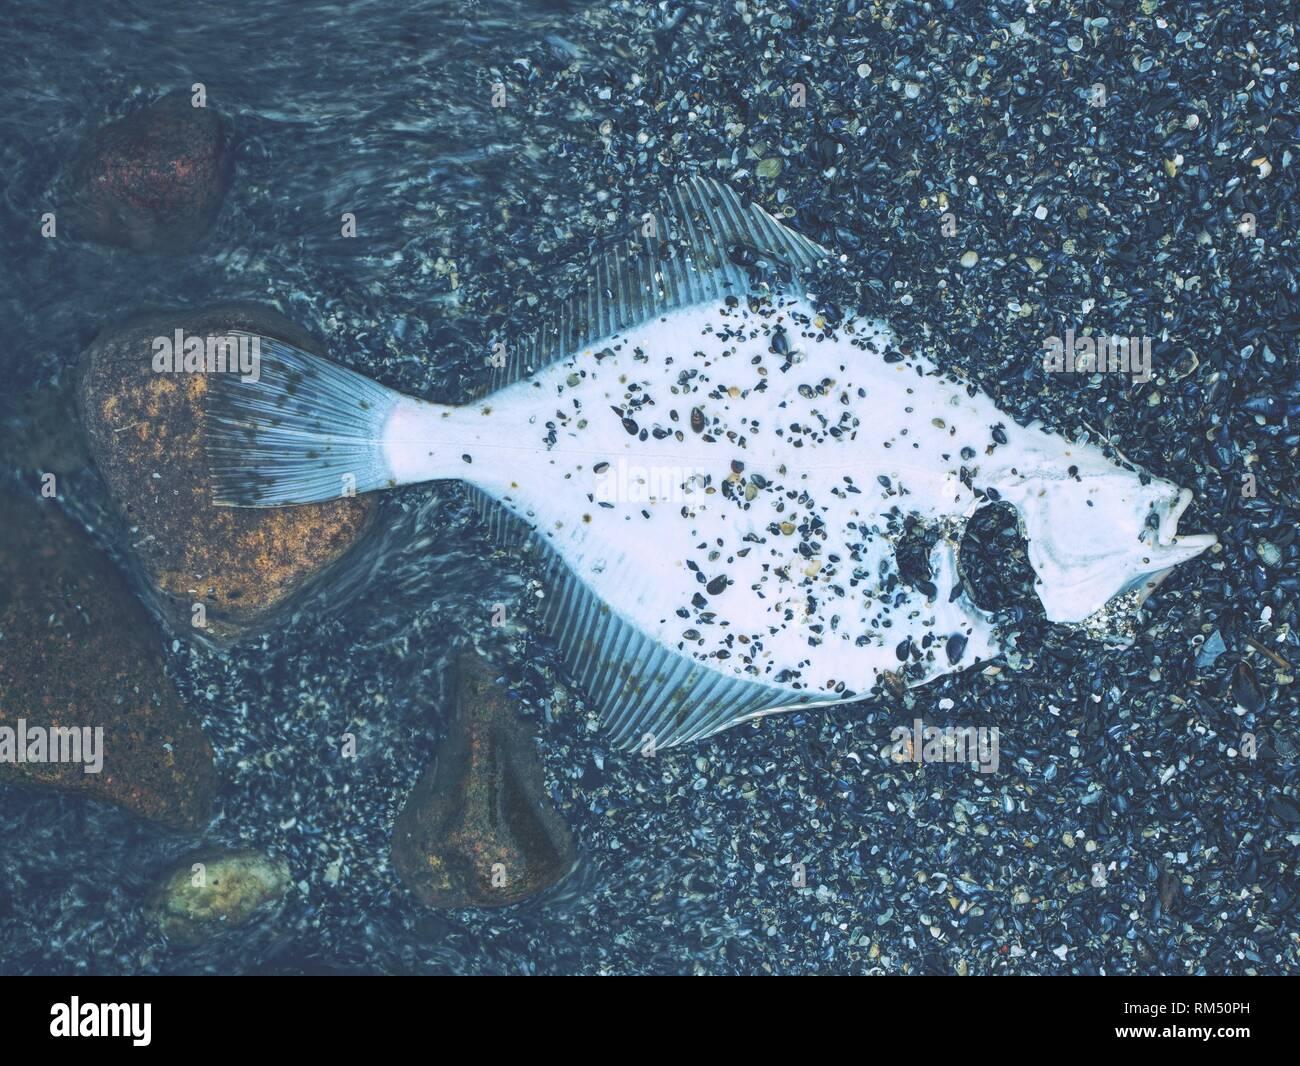 Dead flounder or flatfish is lying in the sand on the Baltic Sea - Stock Image